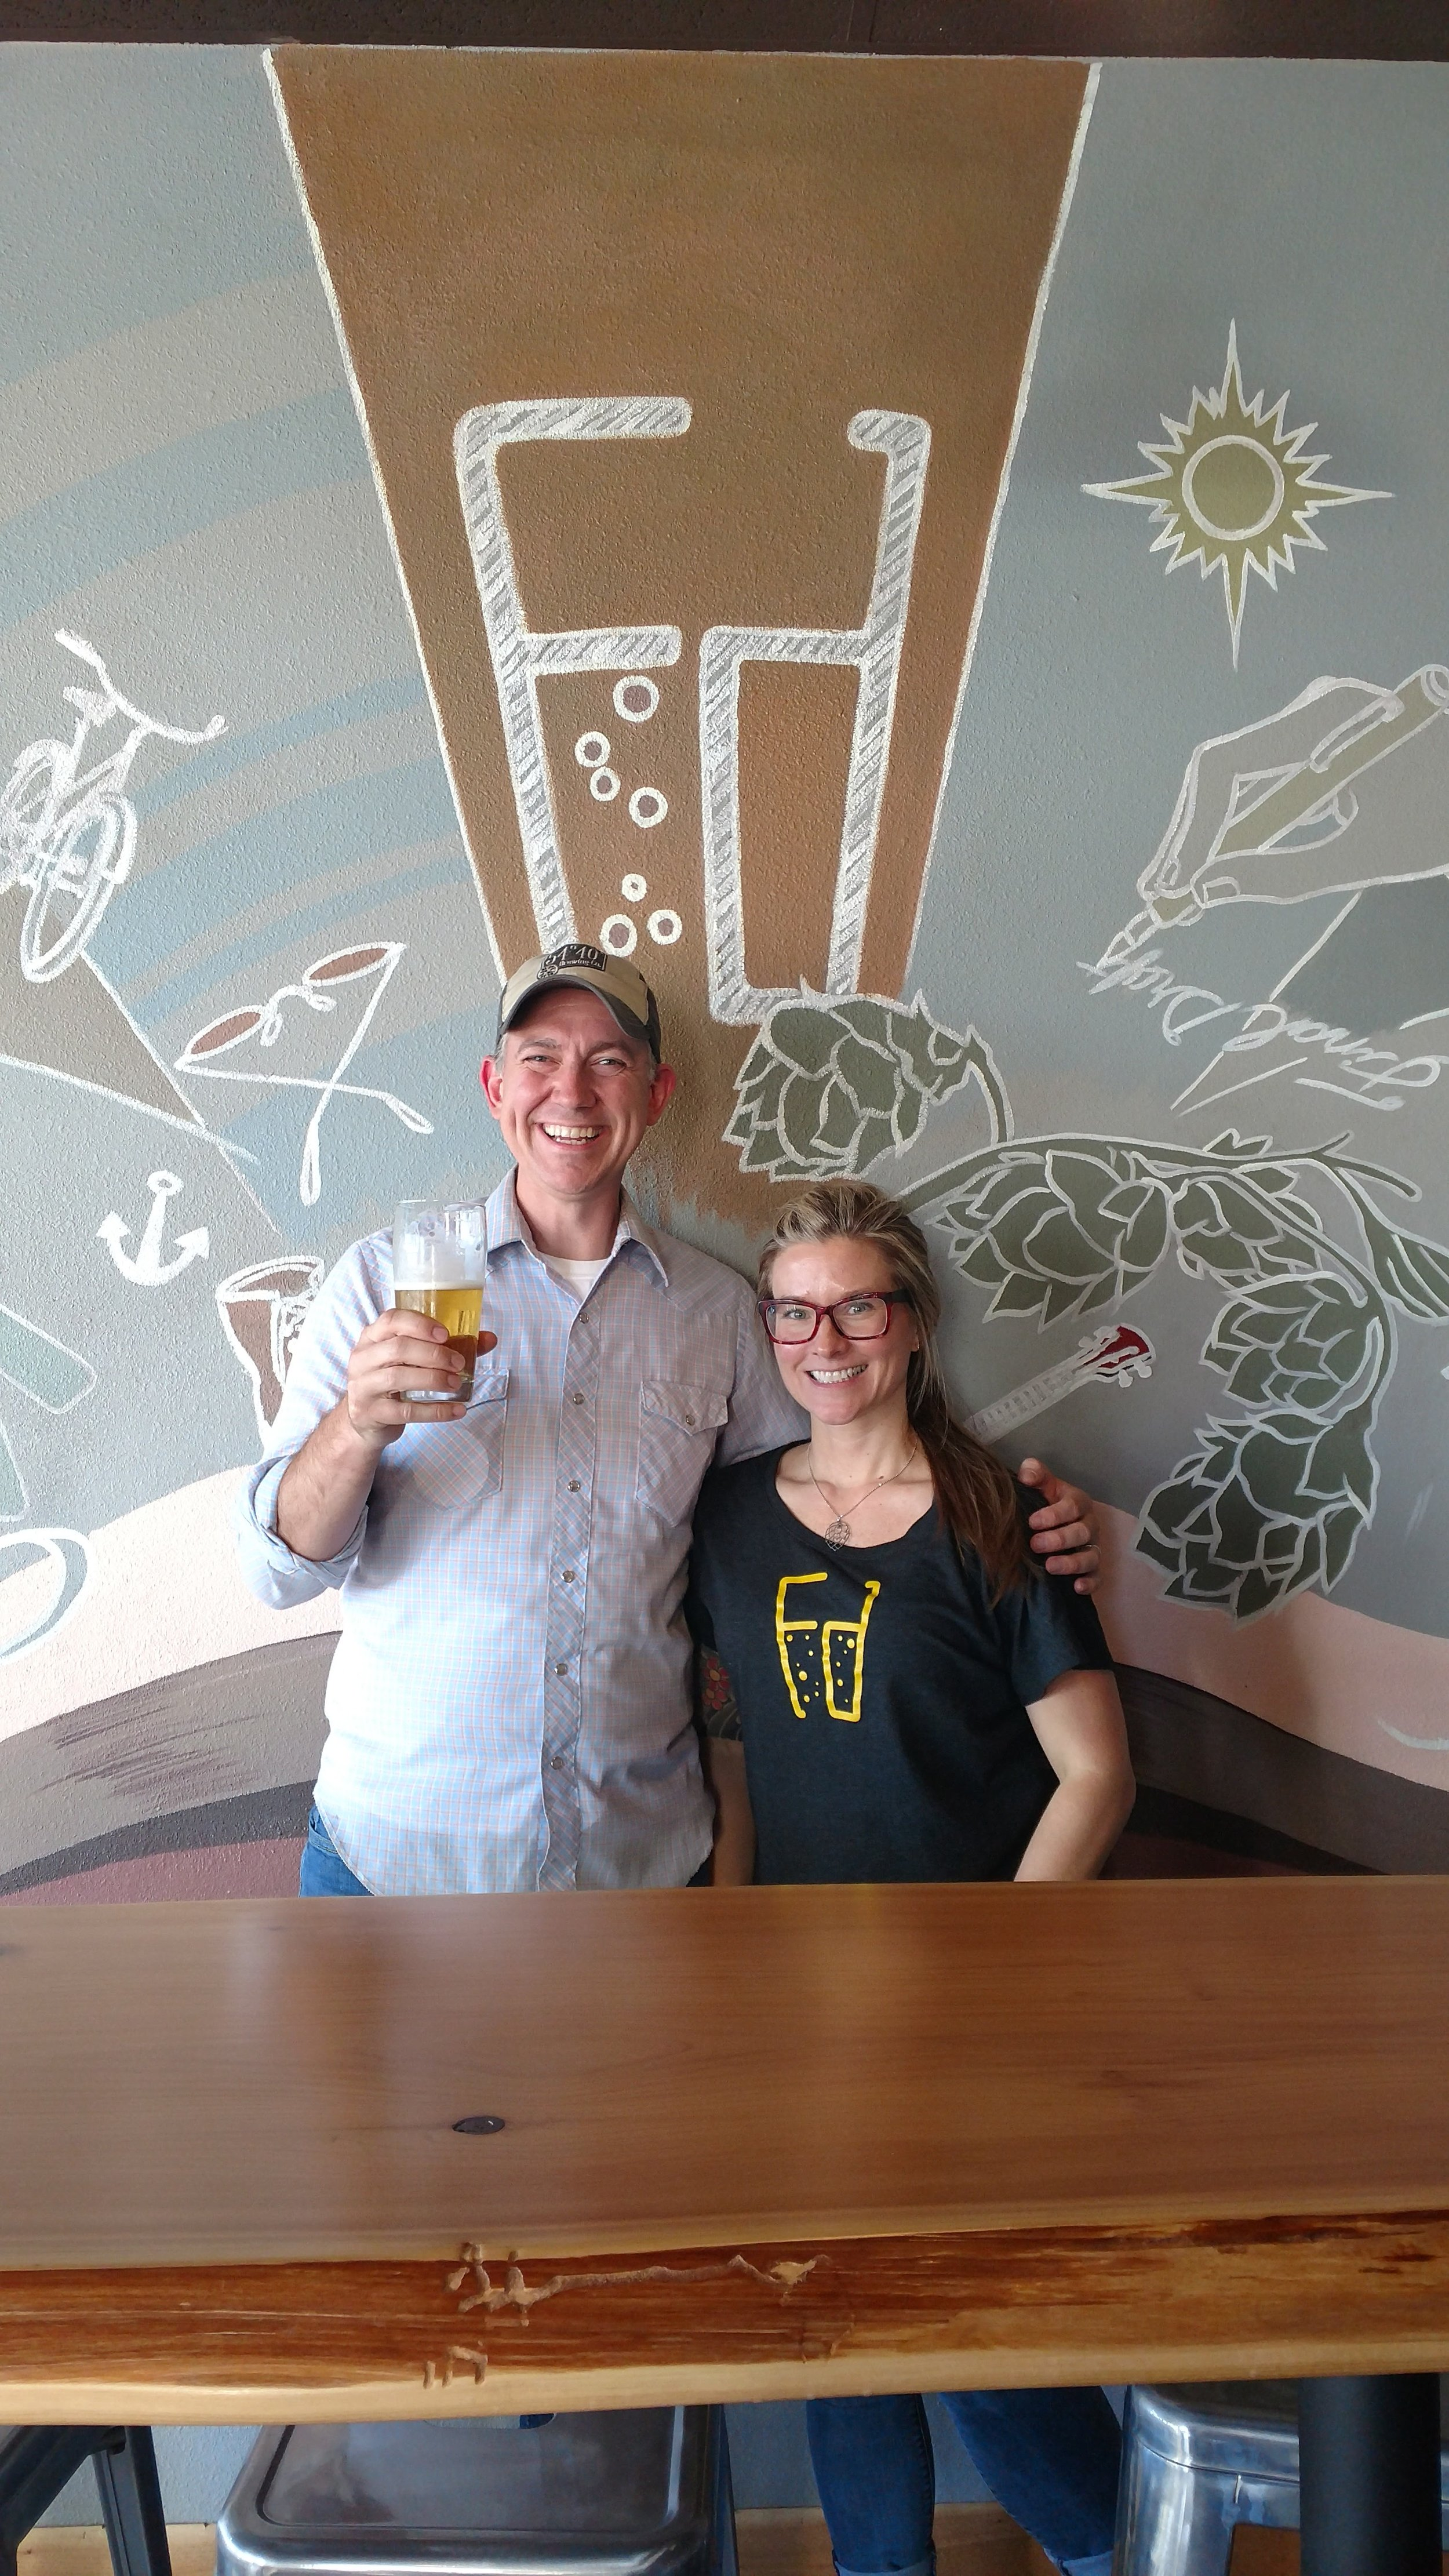 Brewers' Stories - Bolt from 54-40 Brewing